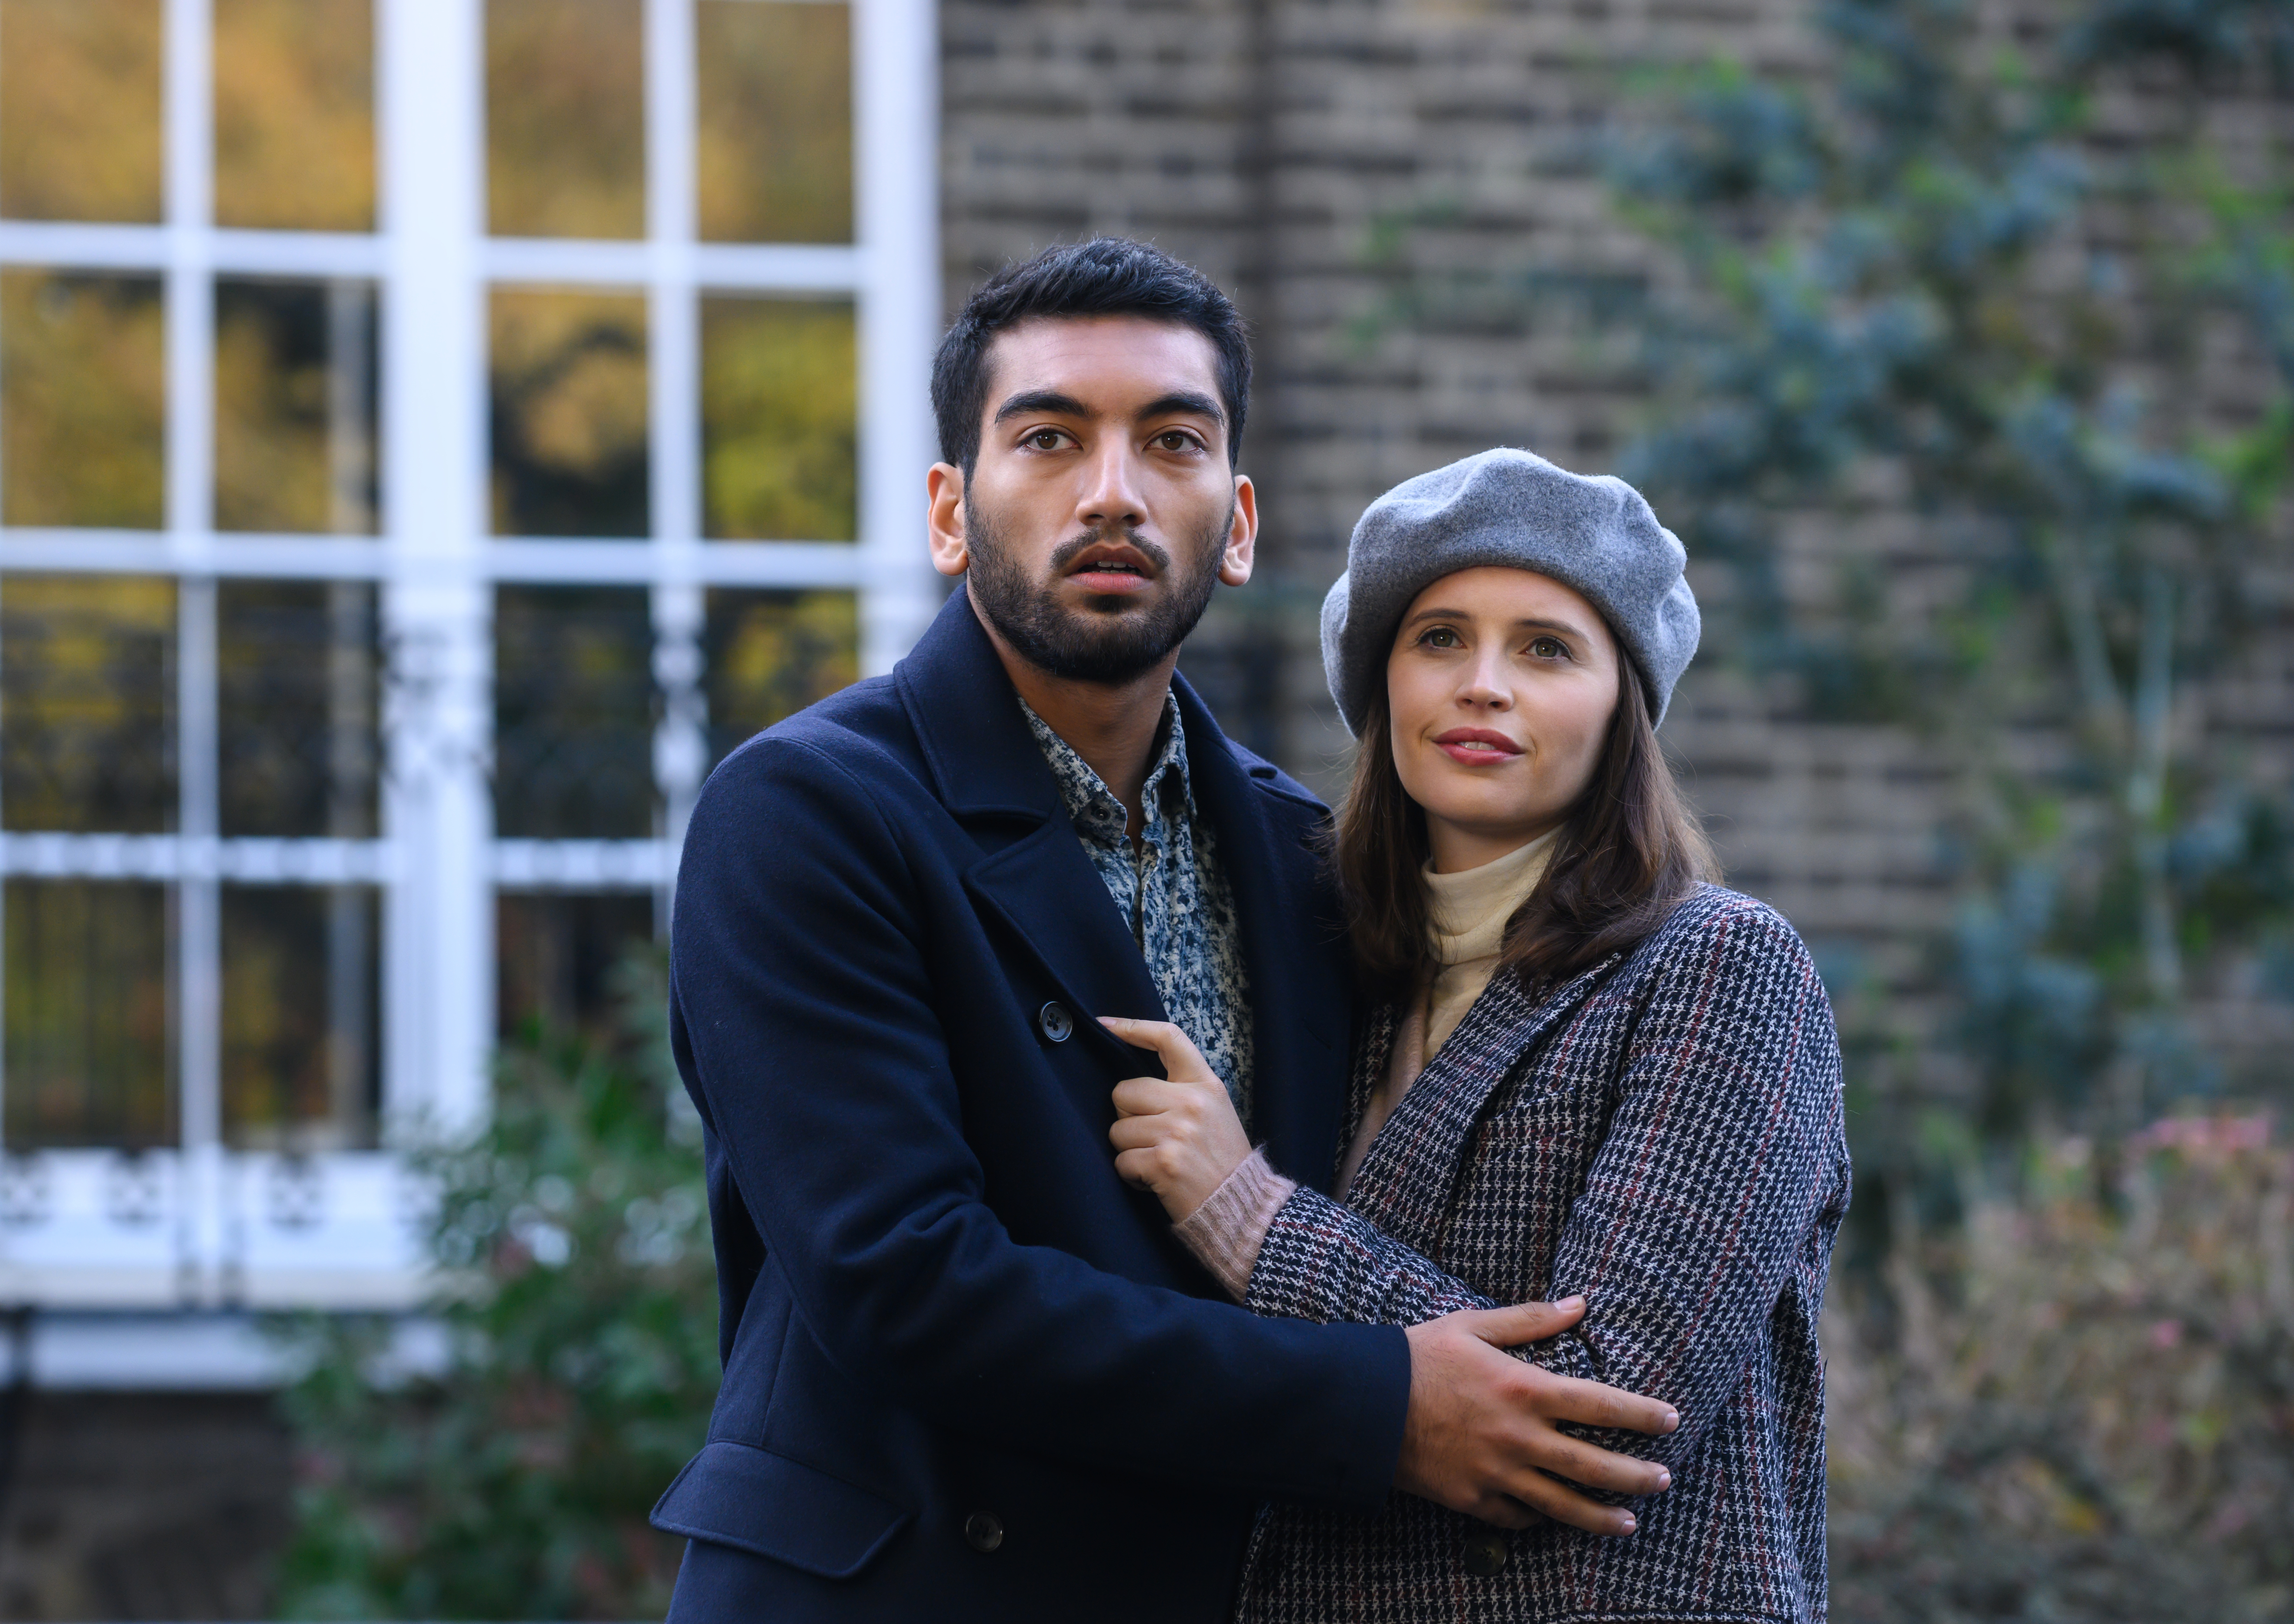 Nabhaan Rizwan as Rory McCallan and Felicity Jones as Ellie Haworth in The Last Letter From Your Lover.